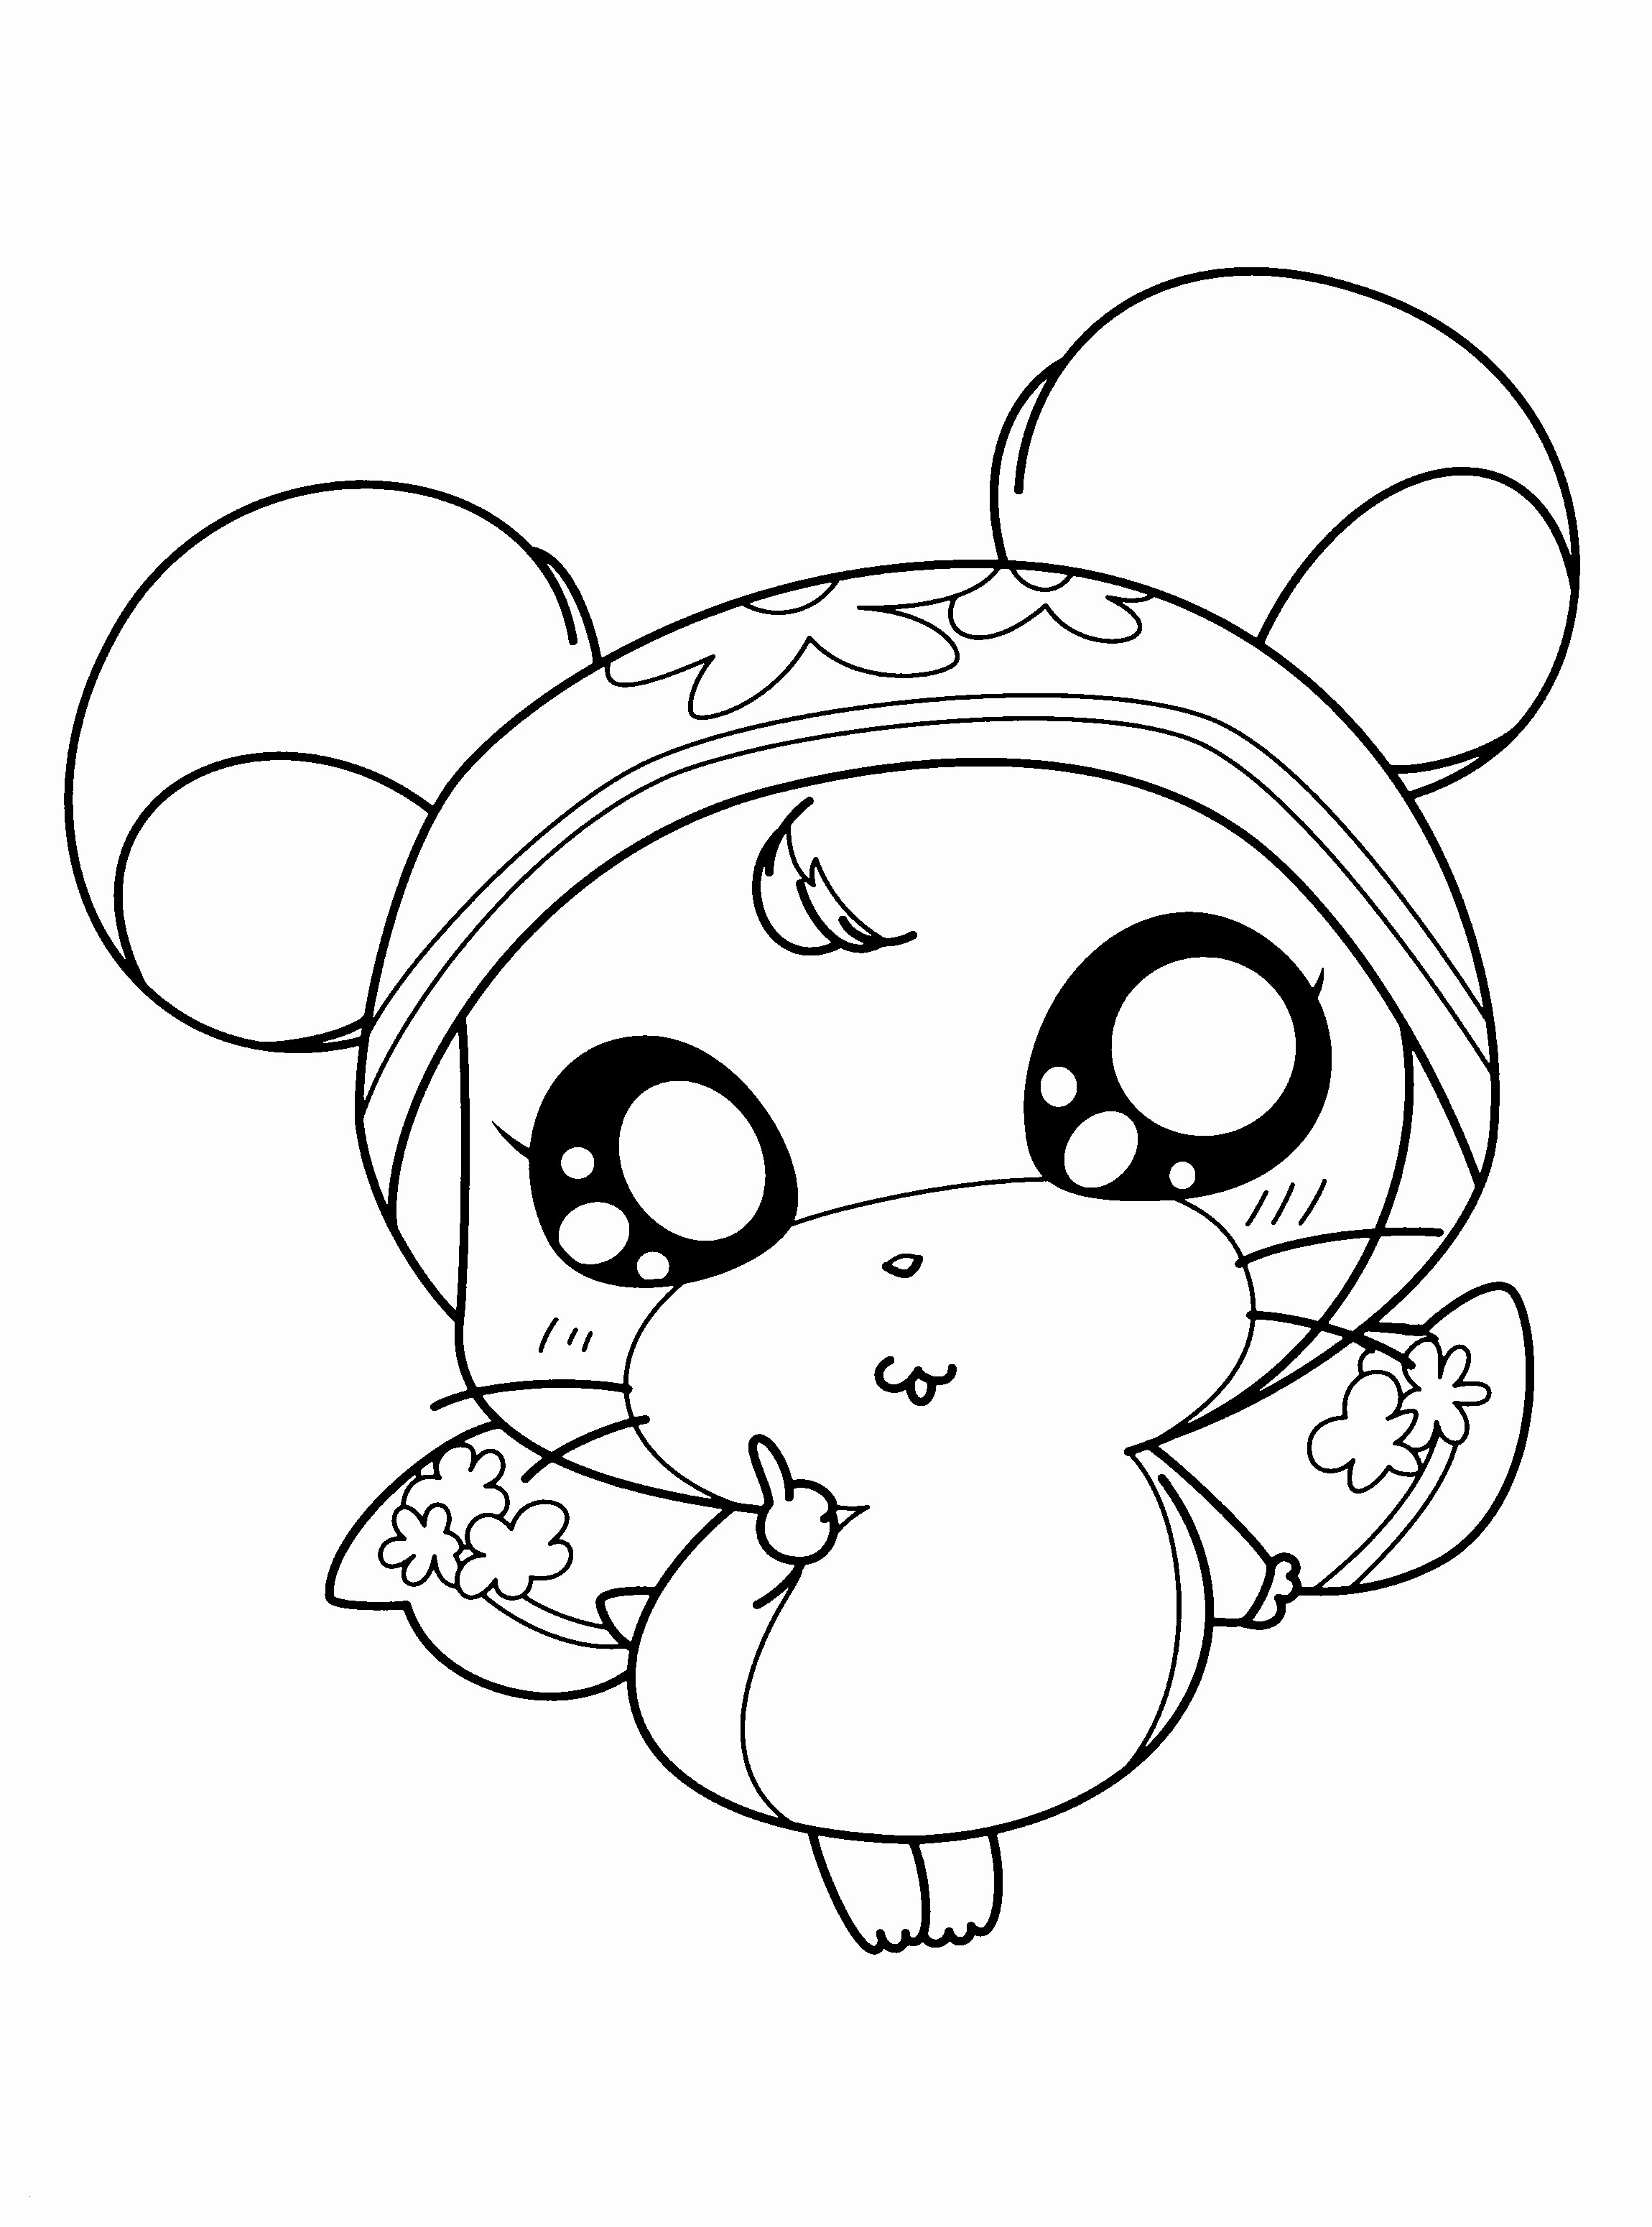 pikachu coloring pages Collection-Pikachu Printable Coloring Pages Pokemon Coloring Pages Lovely Pokemon Coloring Pages Printable Fresh 14-i